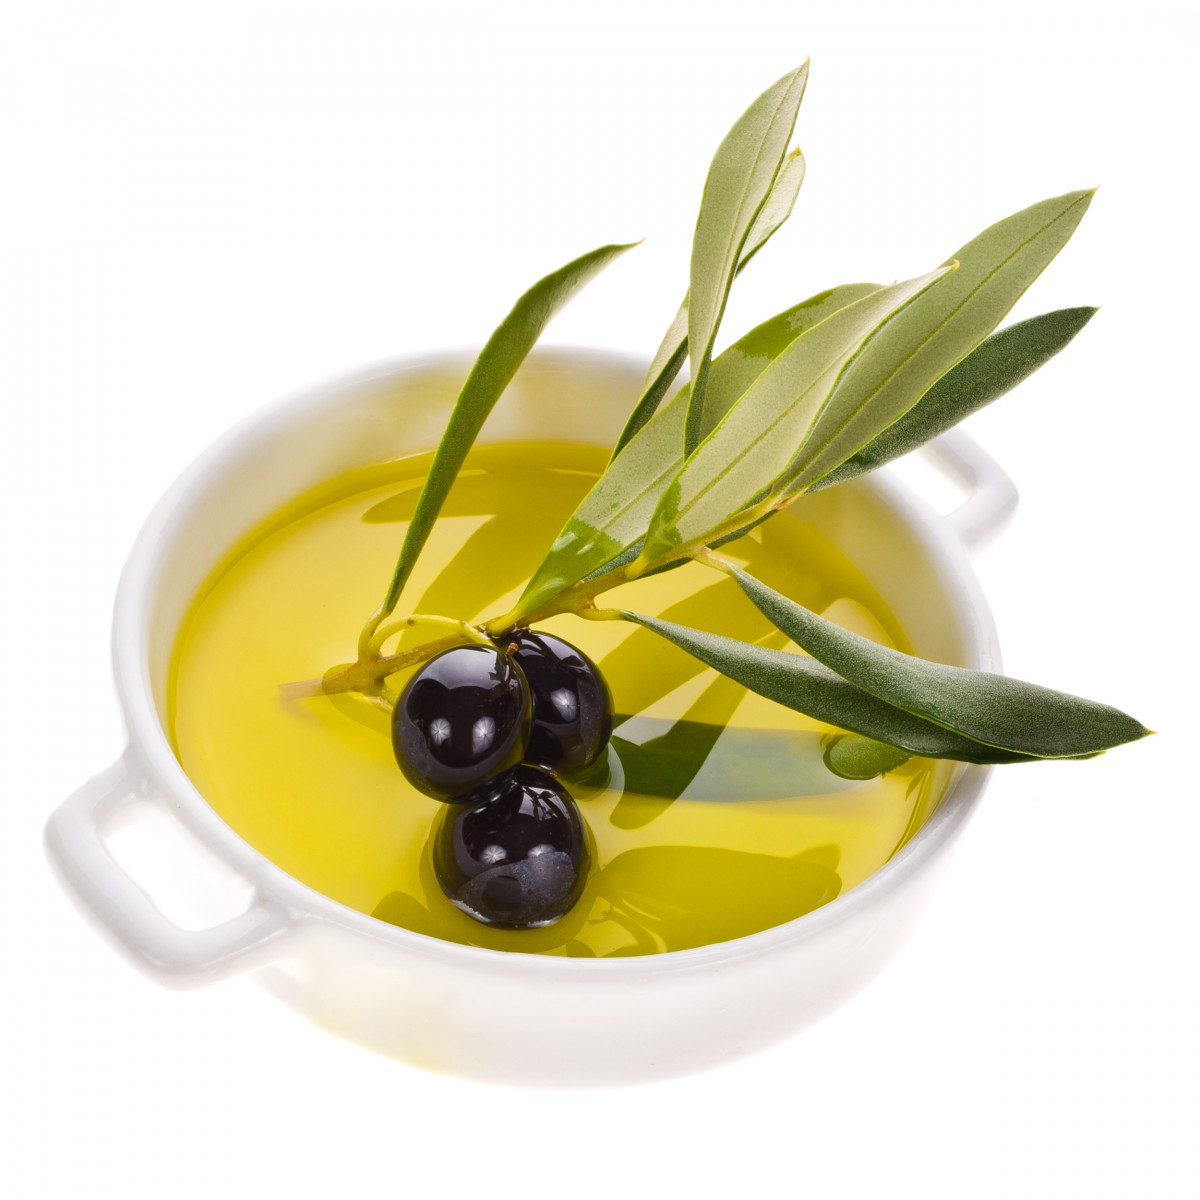 Oleocanthal in Olive Oil Pokes Holes in Cancer Cells